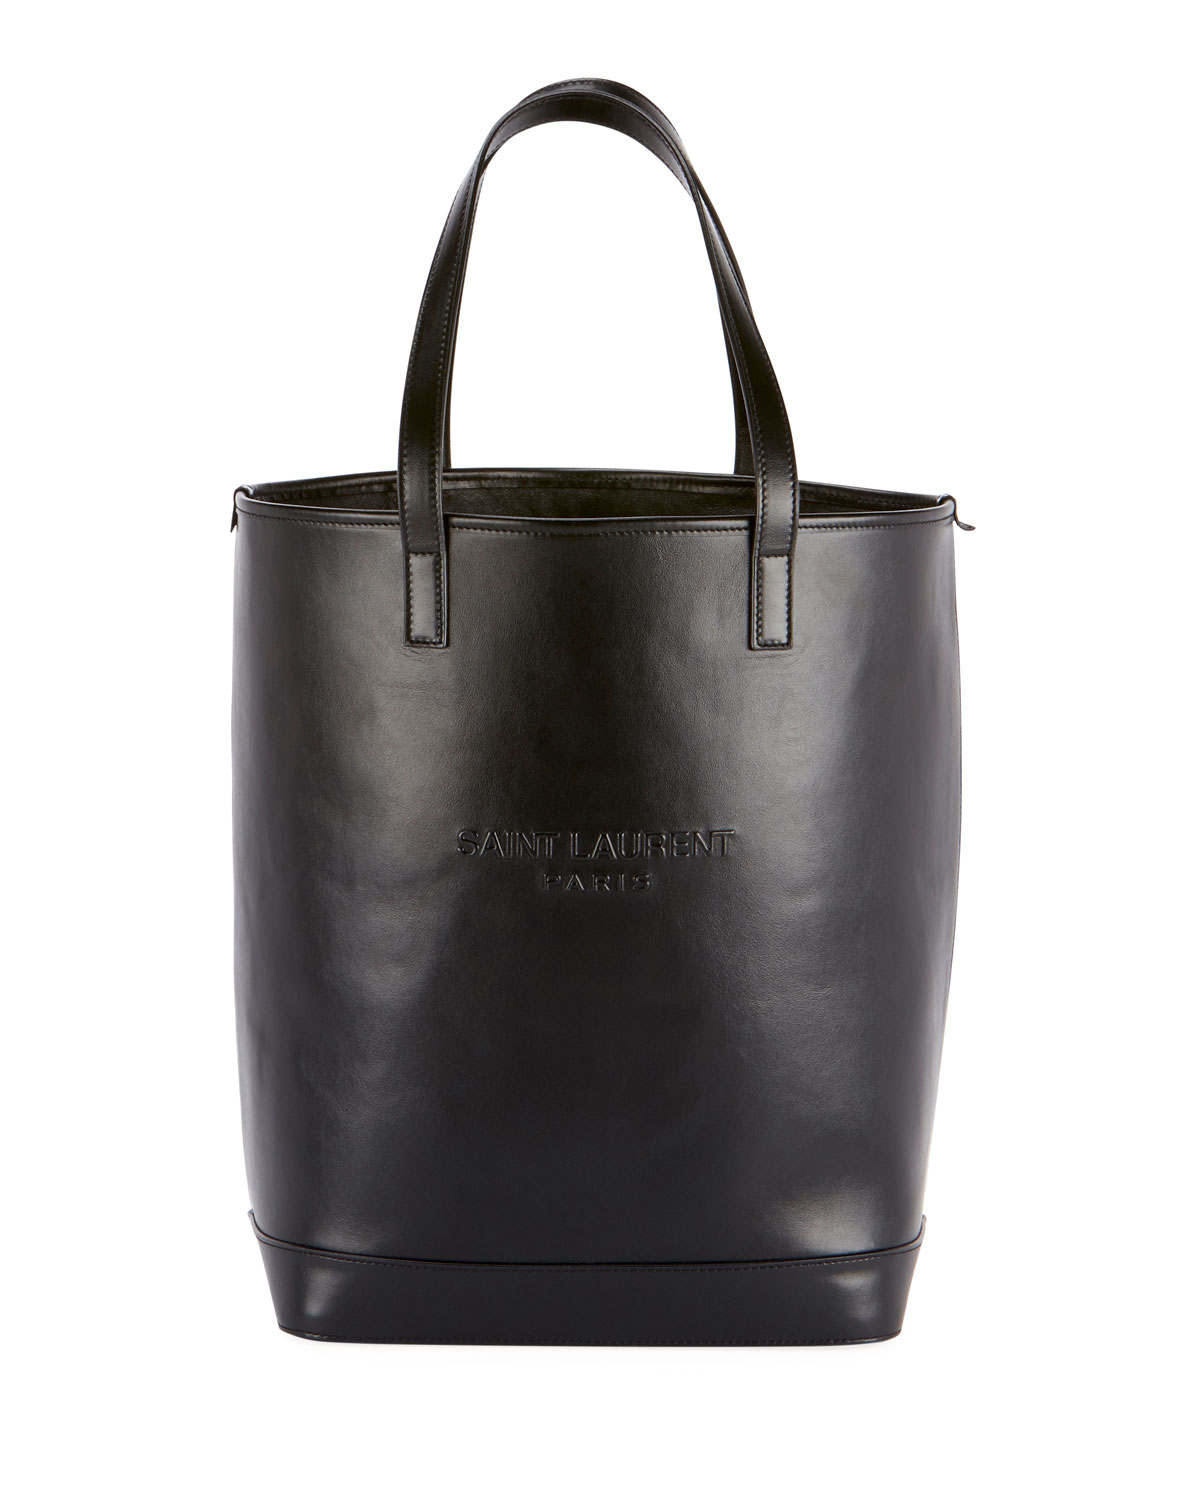 Teddy Harlem Large Leather Bucket Bag With Embossed Logo by Saint Laurent